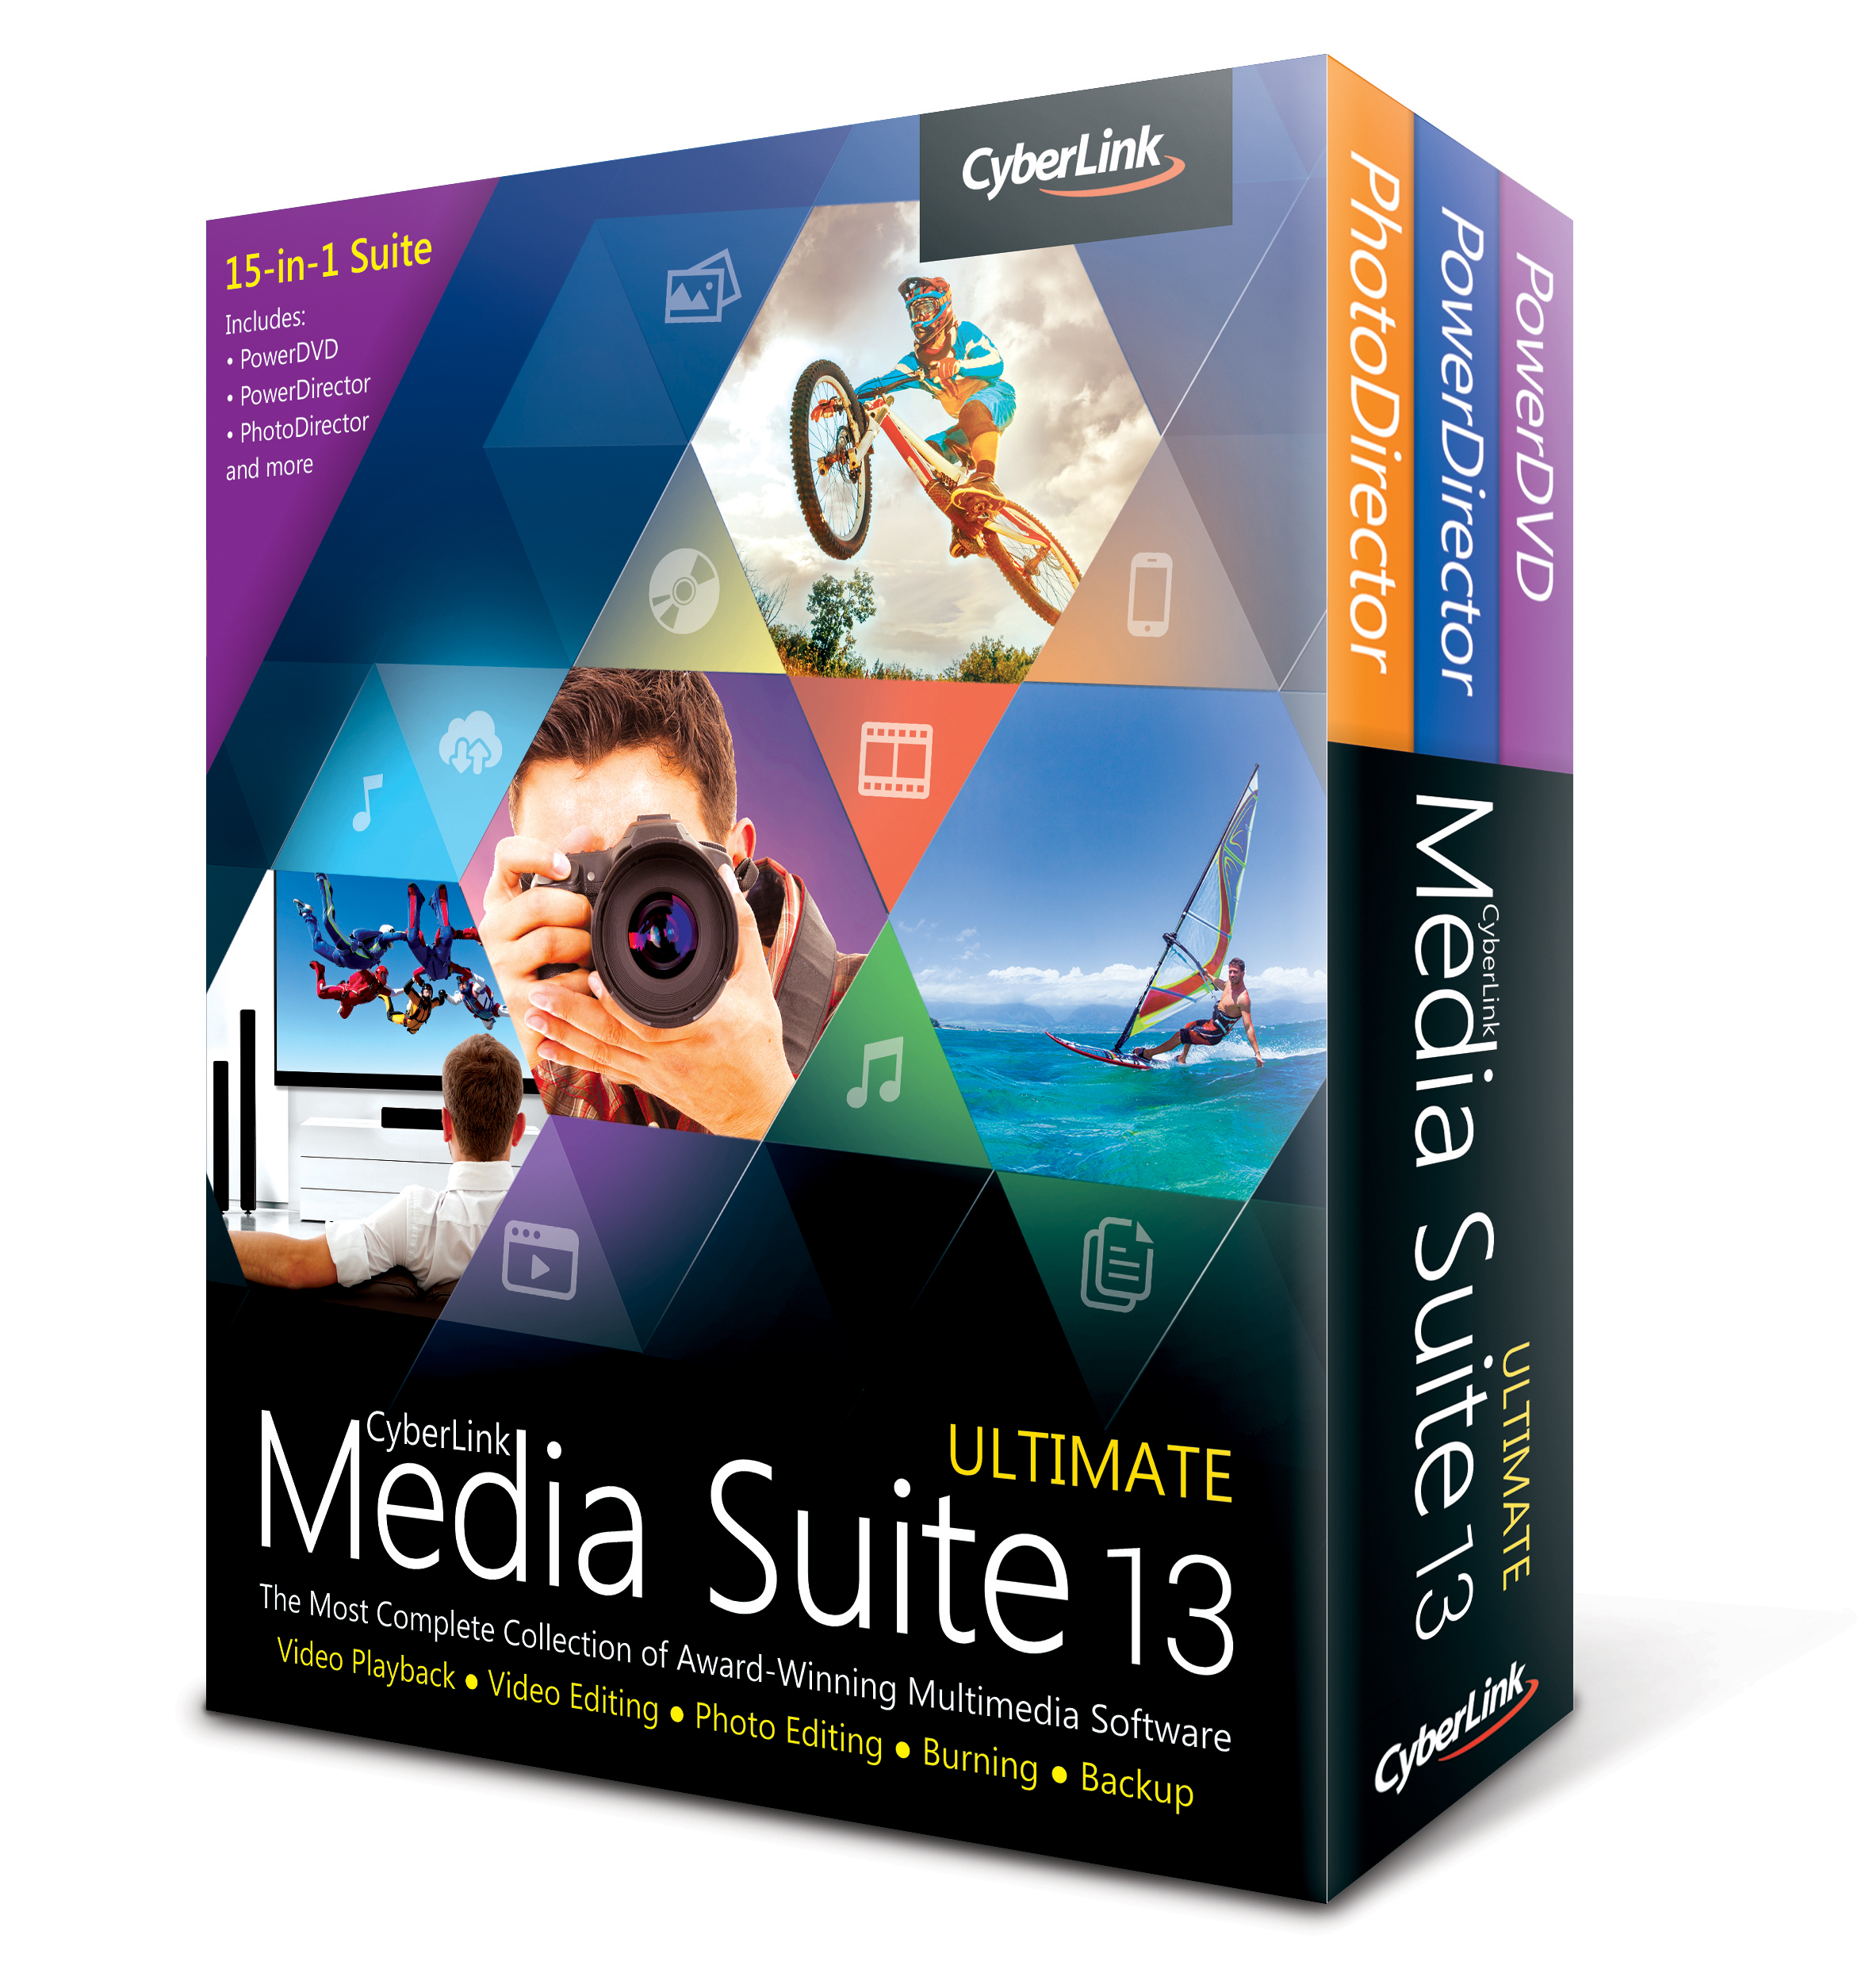 Upgrade to MediaSuite 13 Ultimate from v. 9/10/11/12 Pro/Centra/non-Ultra